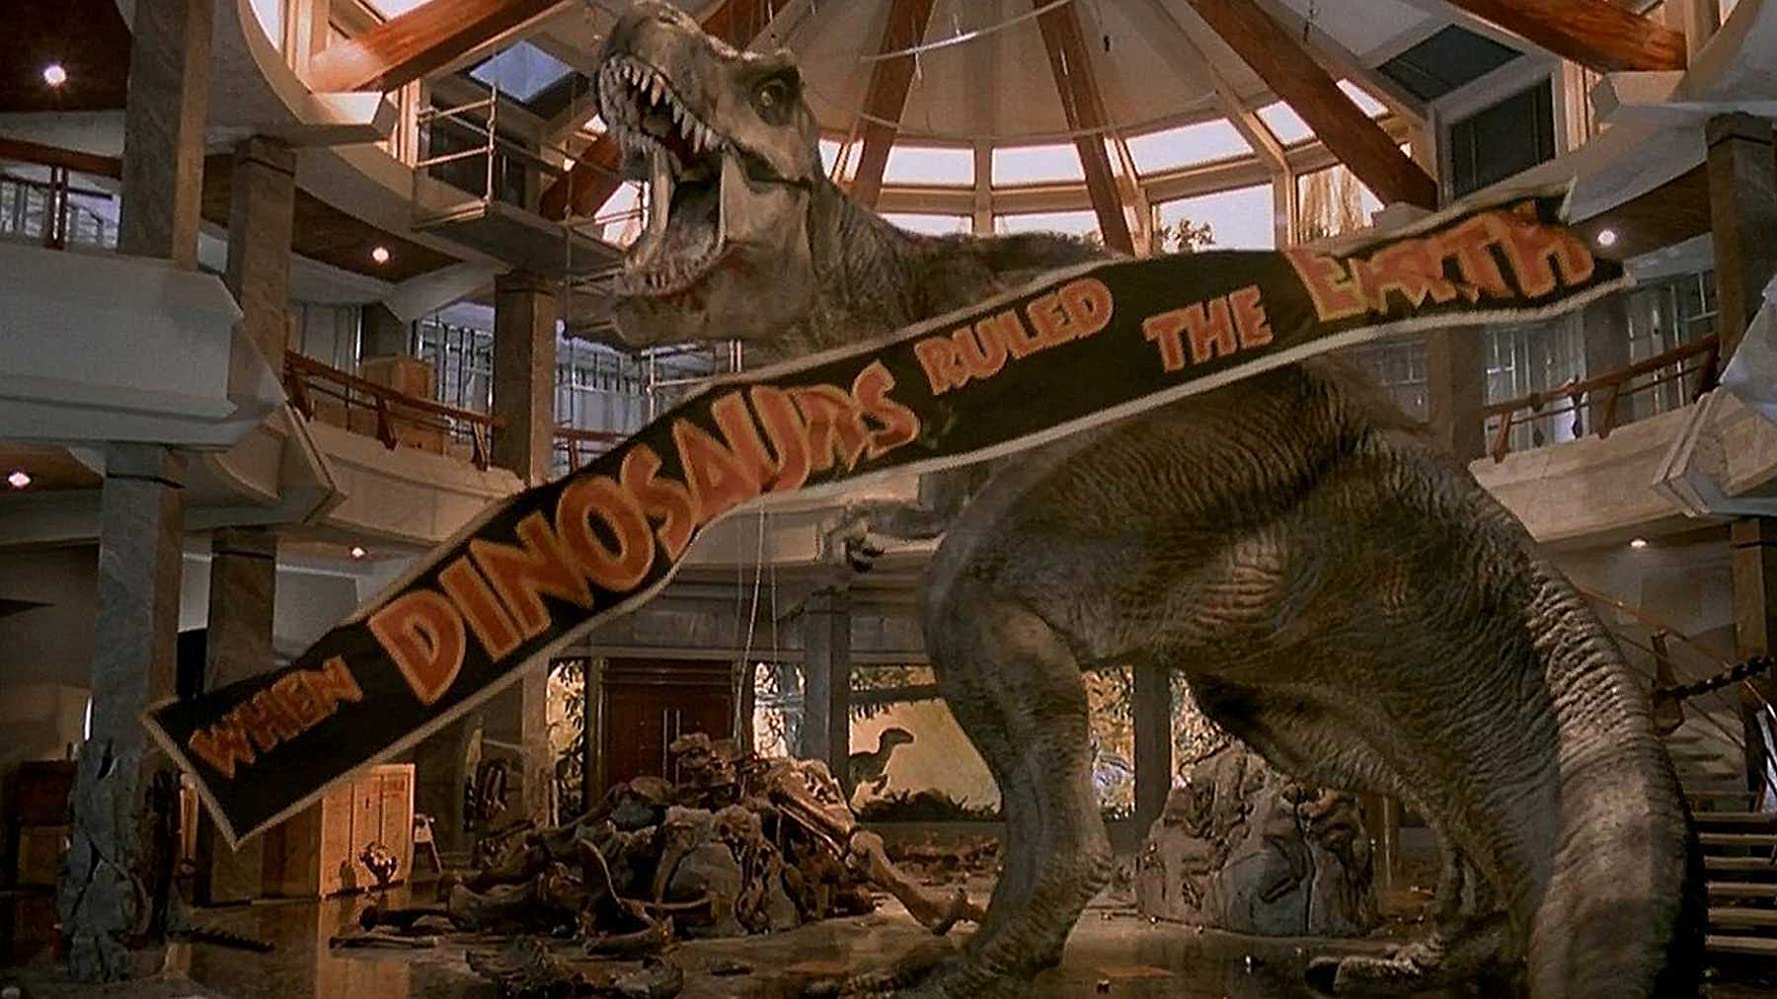 [News] Universal & IGN to Host JURASSIC PARK Watch Party